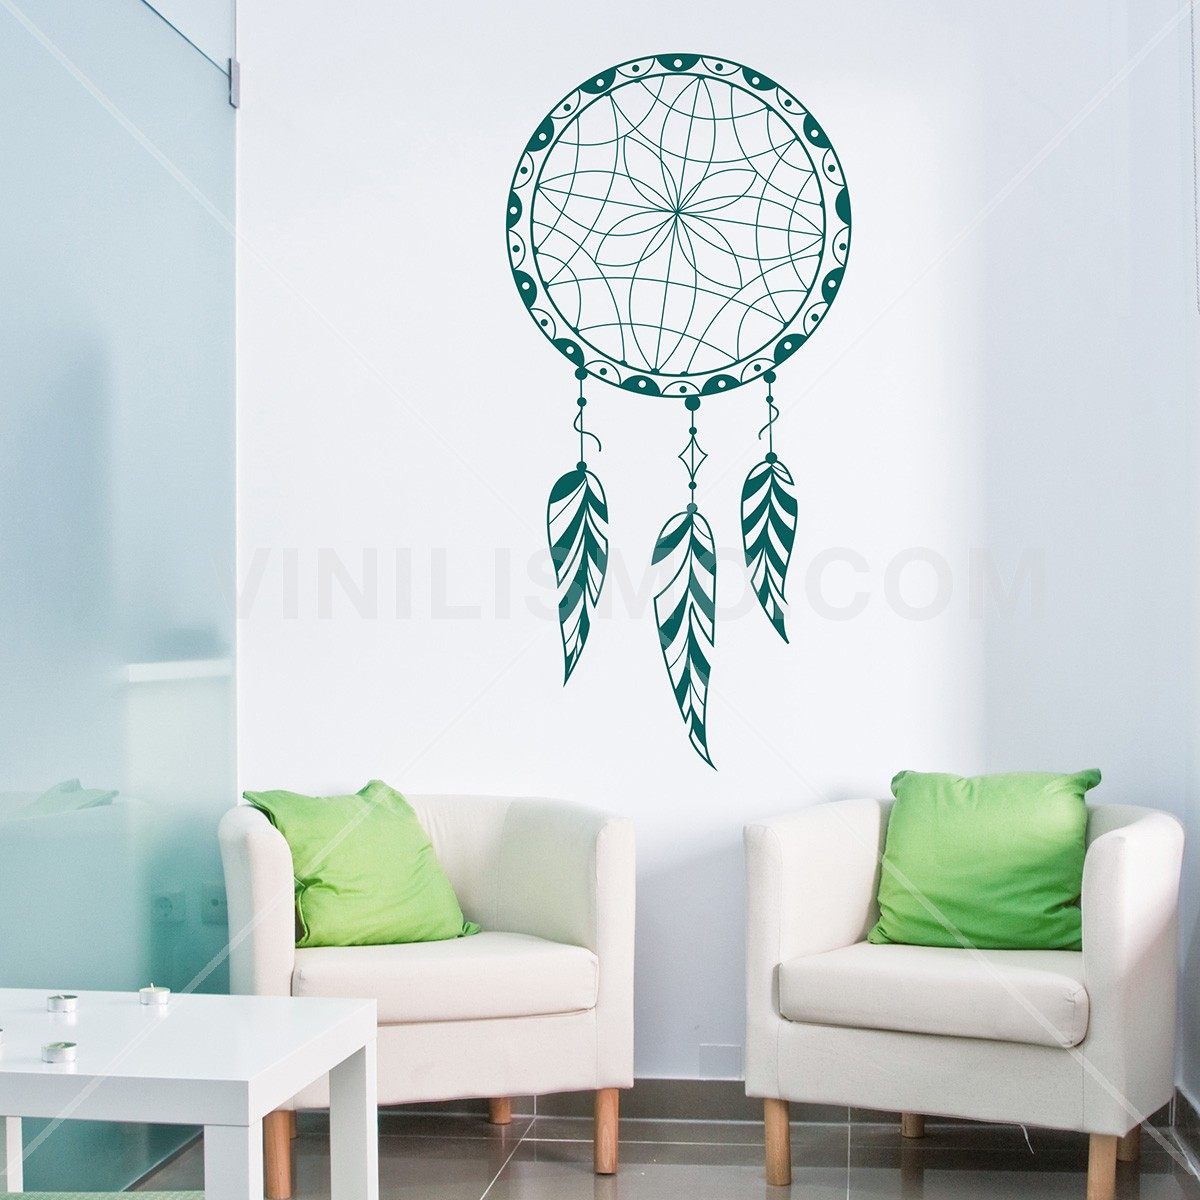 Vinilo Decorativo Pared Vinilo Decorativo Dreamcatcher